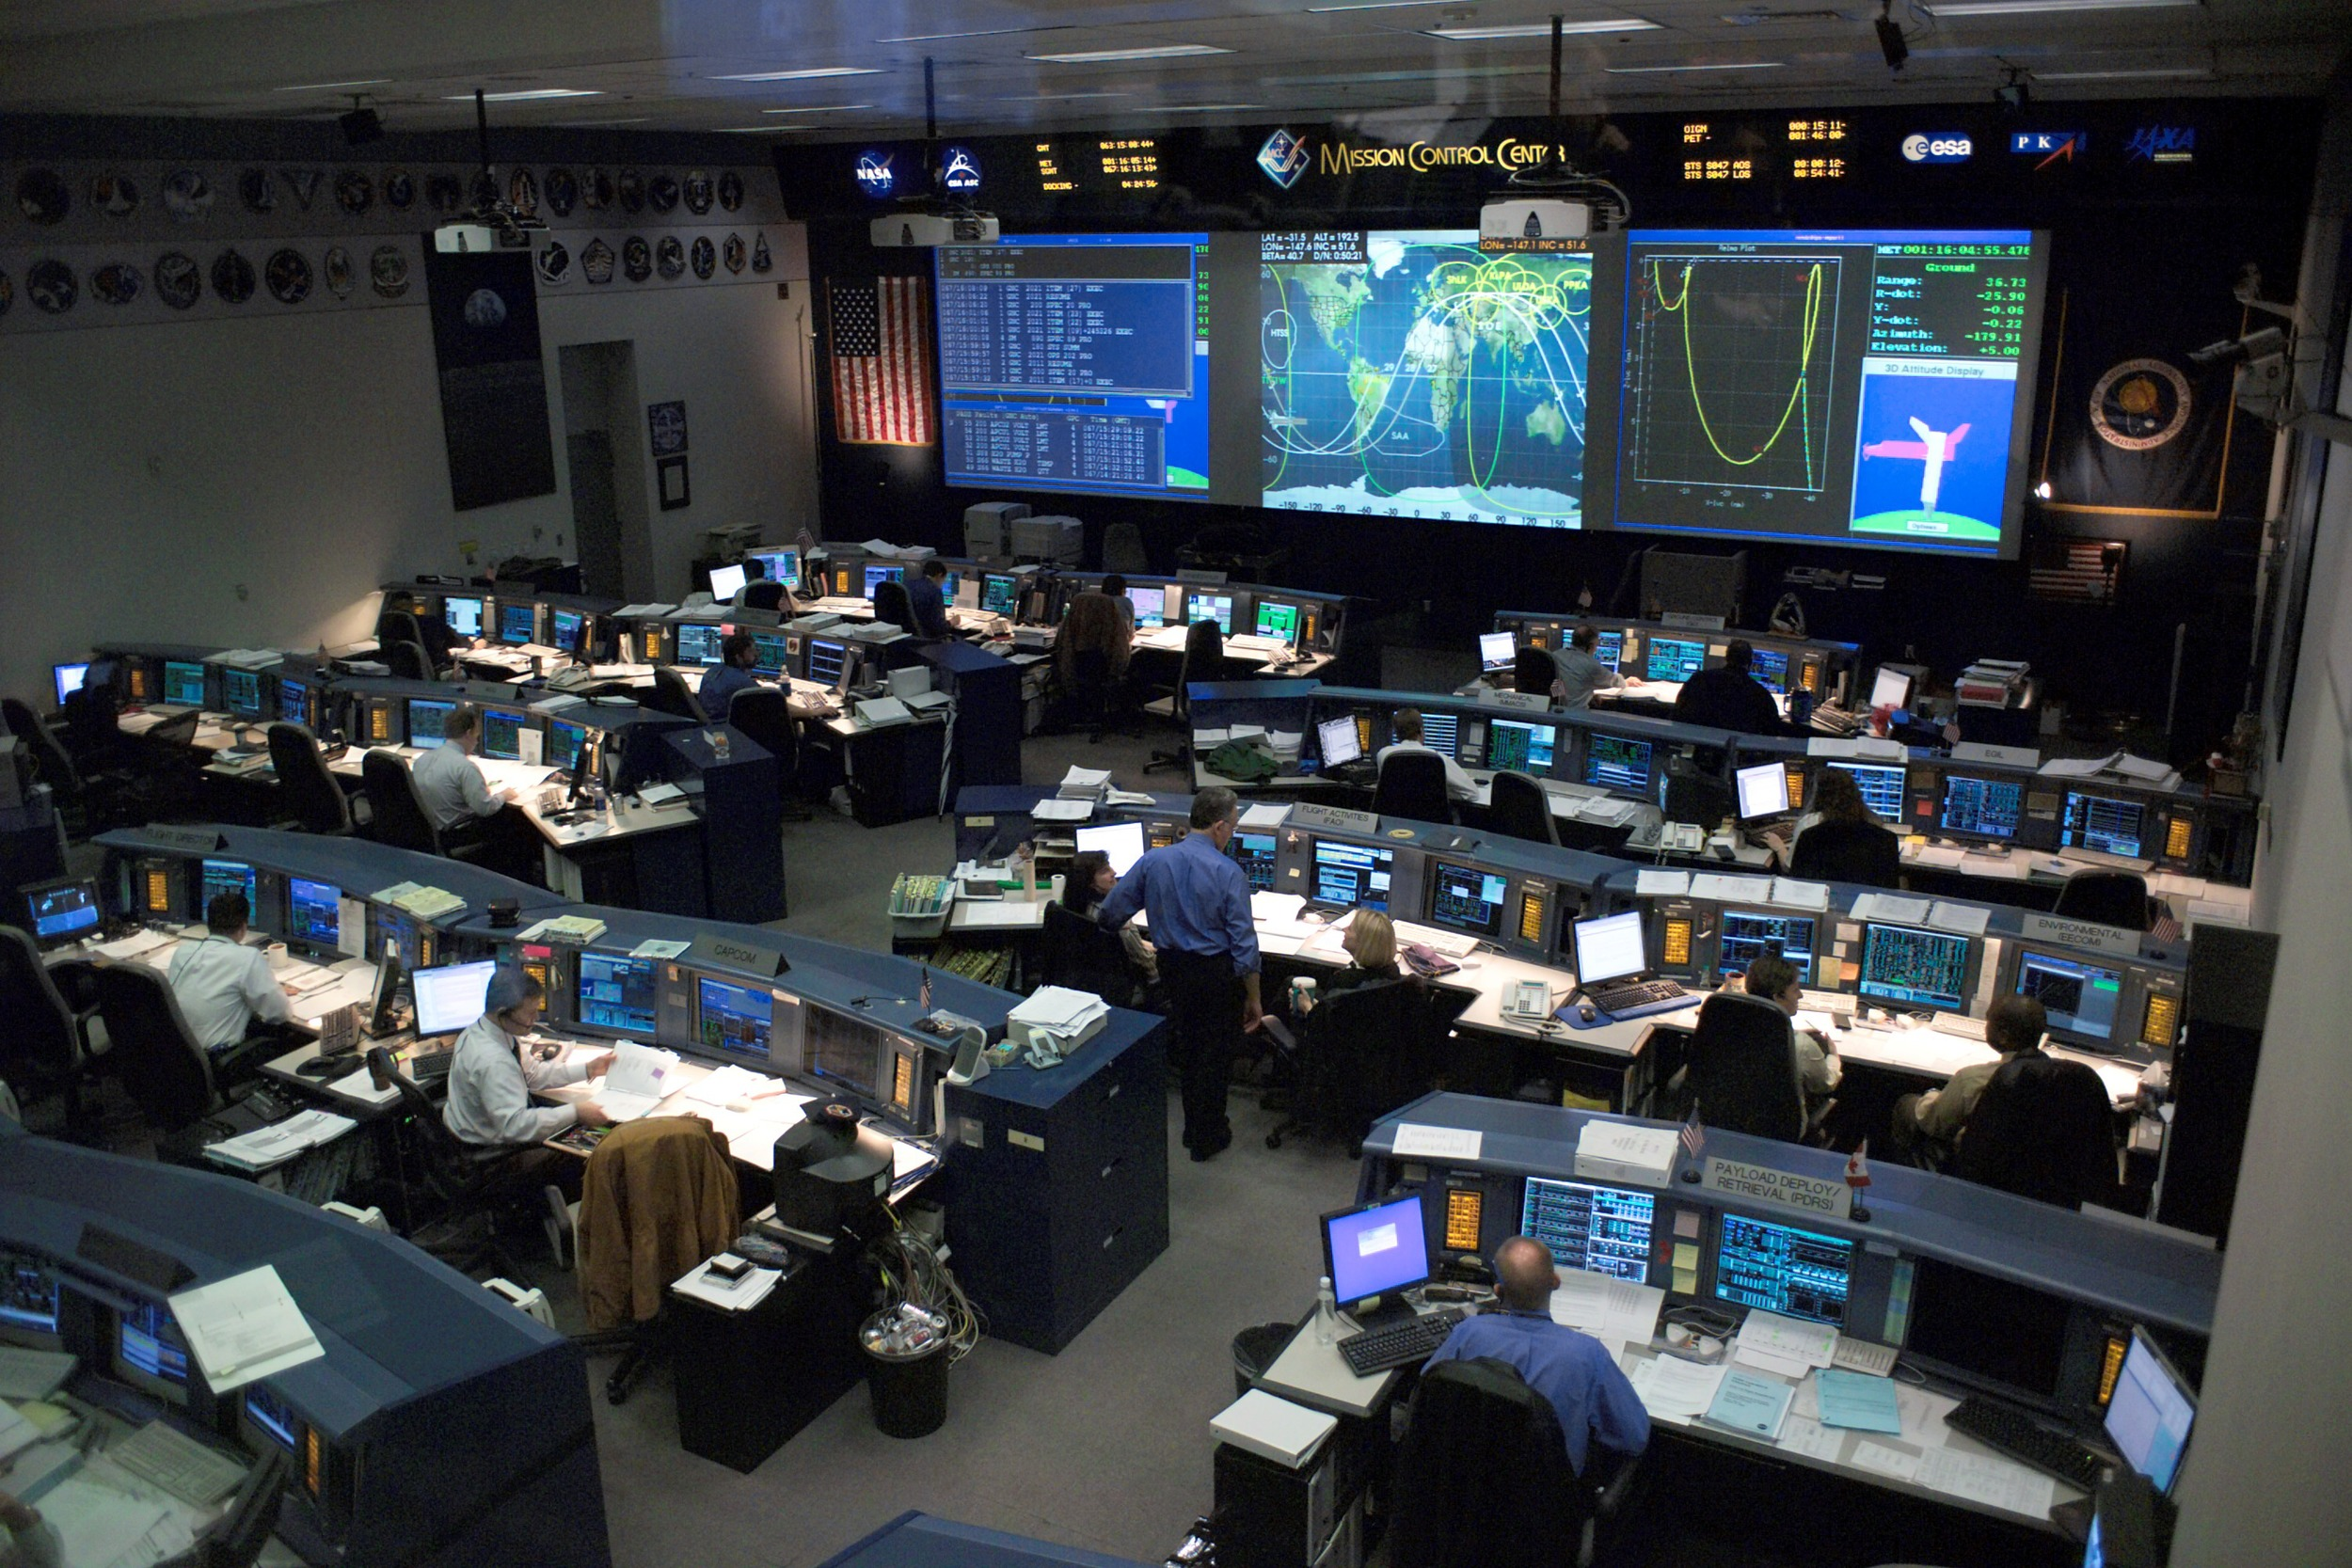 Space Shuttle Control Room